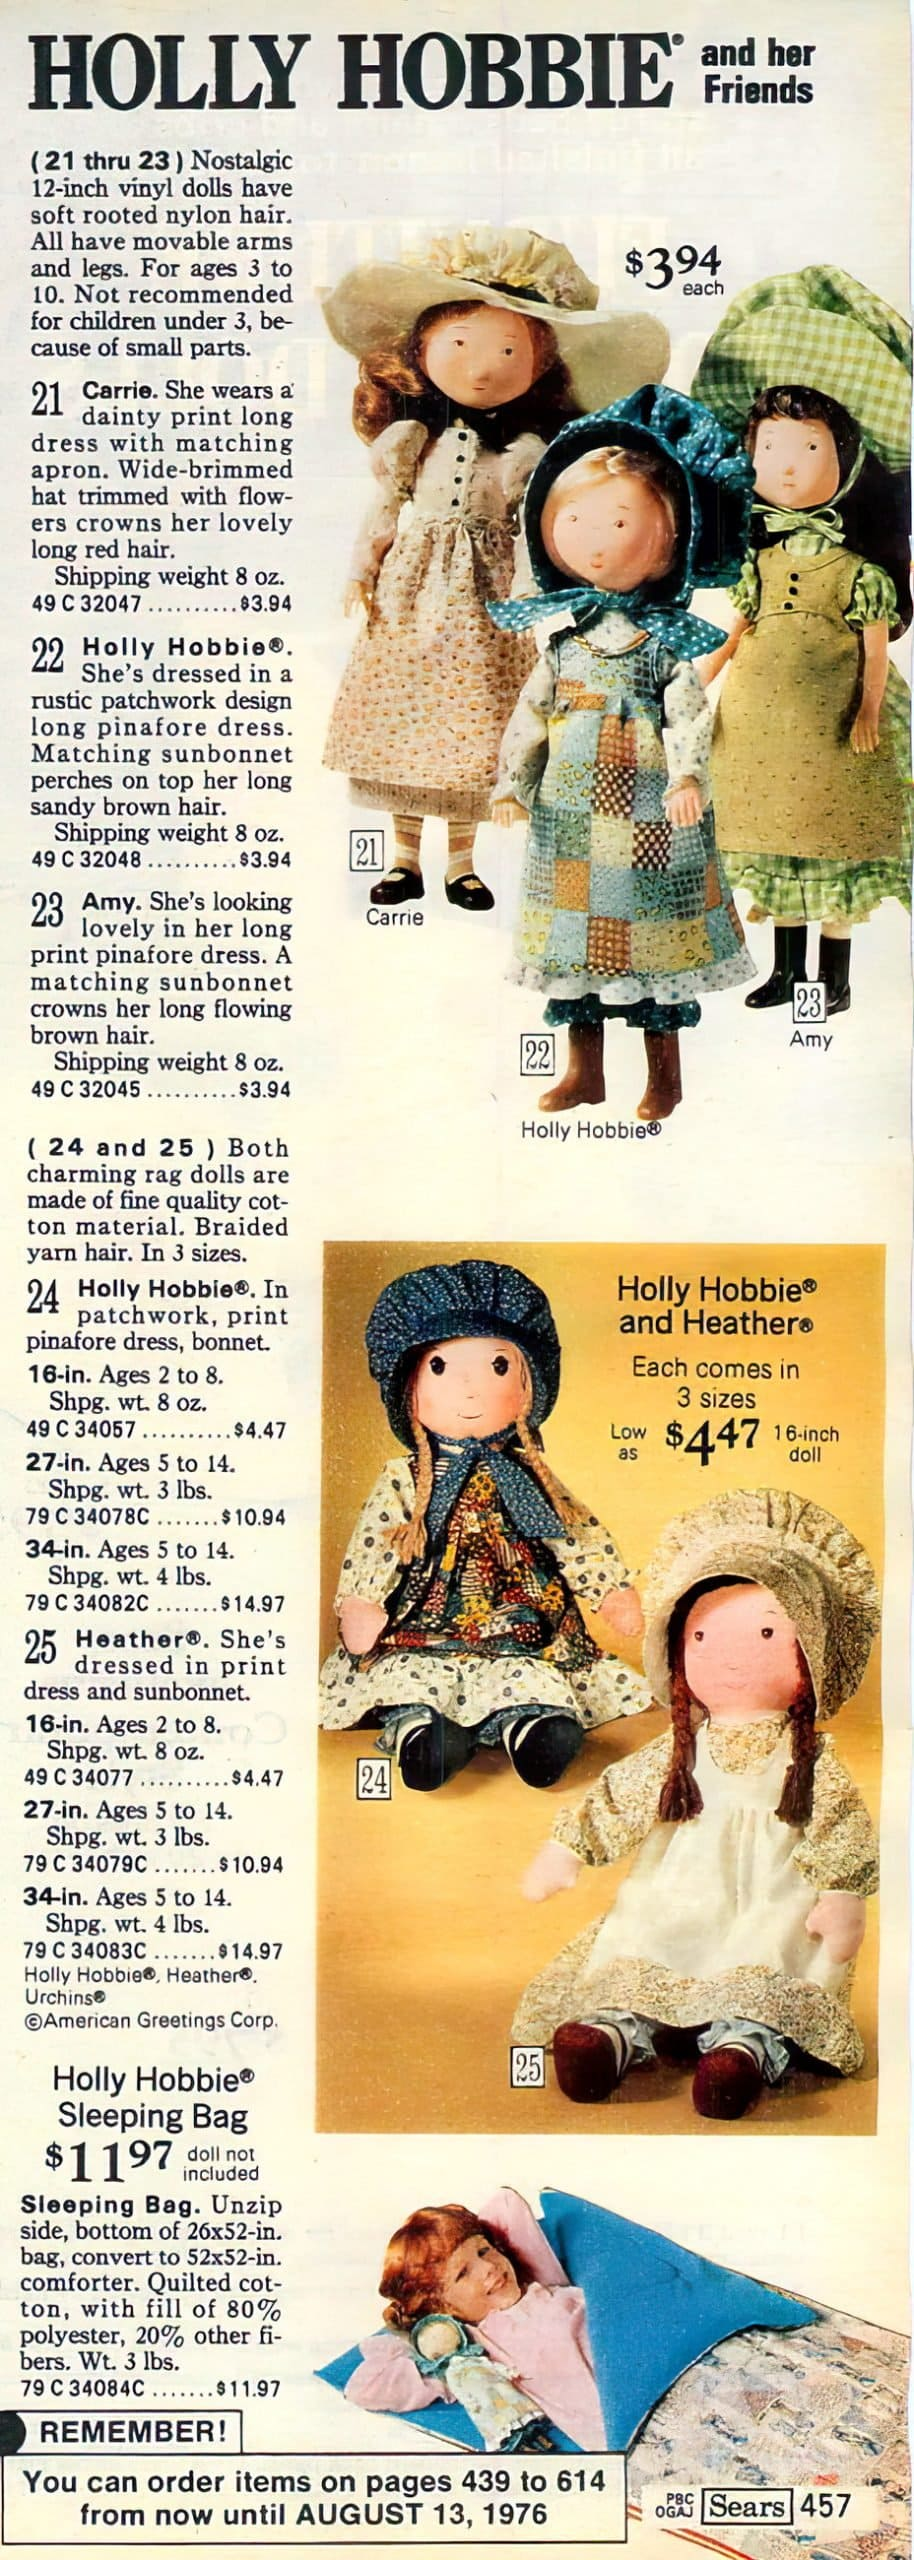 Vintage Hollie Hobbie toys and dolls at Sears 1975